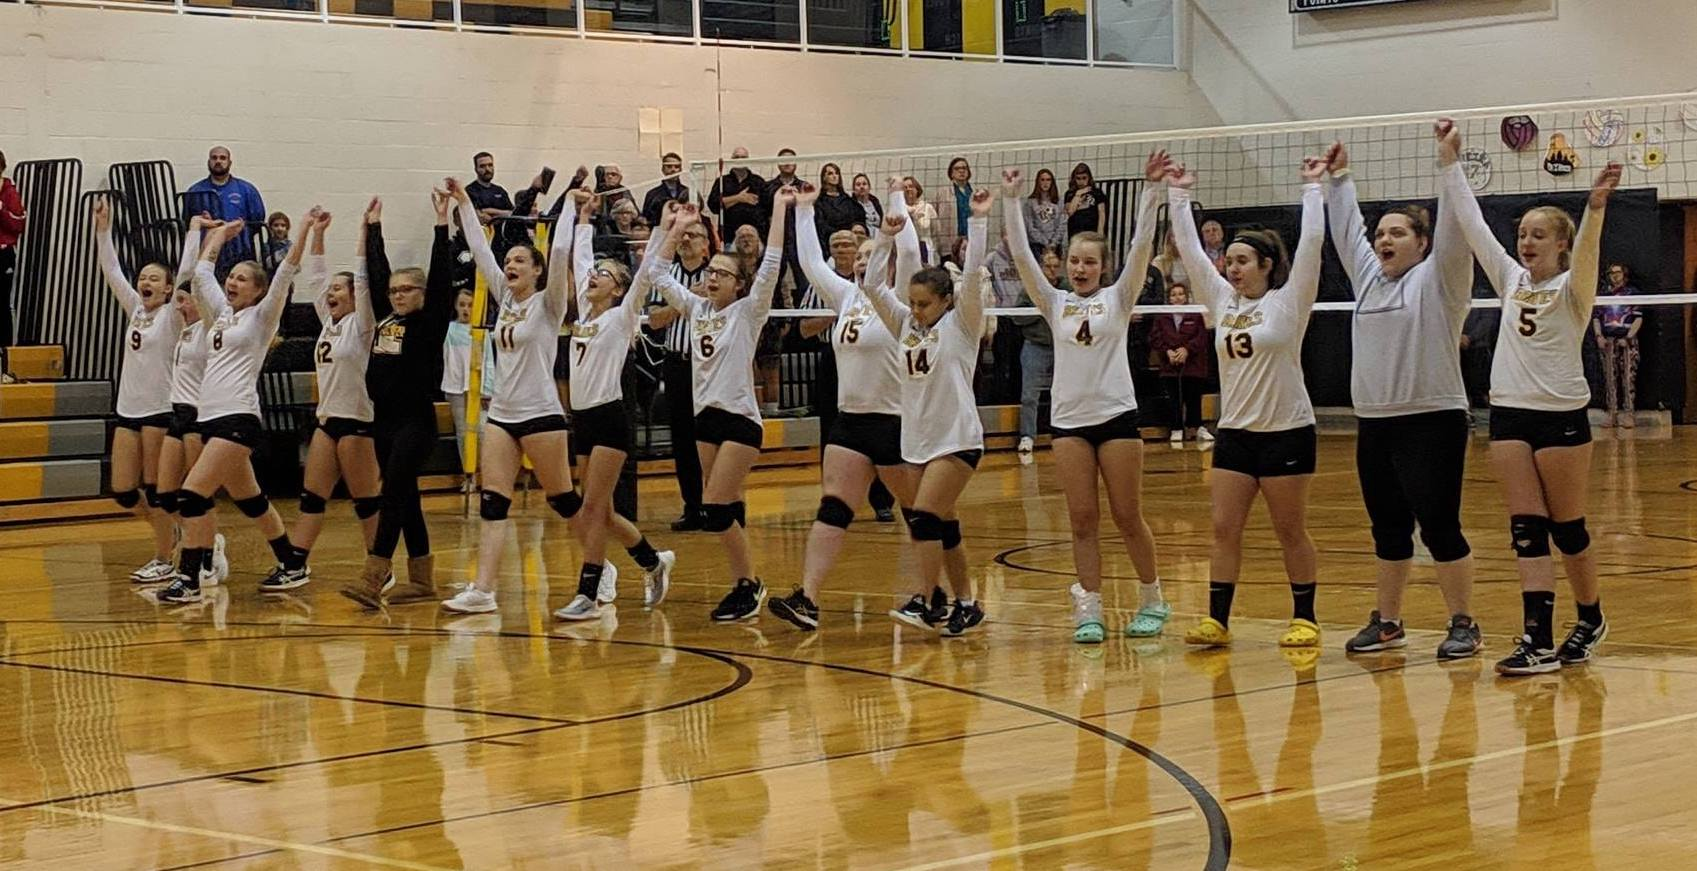 Volleyball team raising hands together